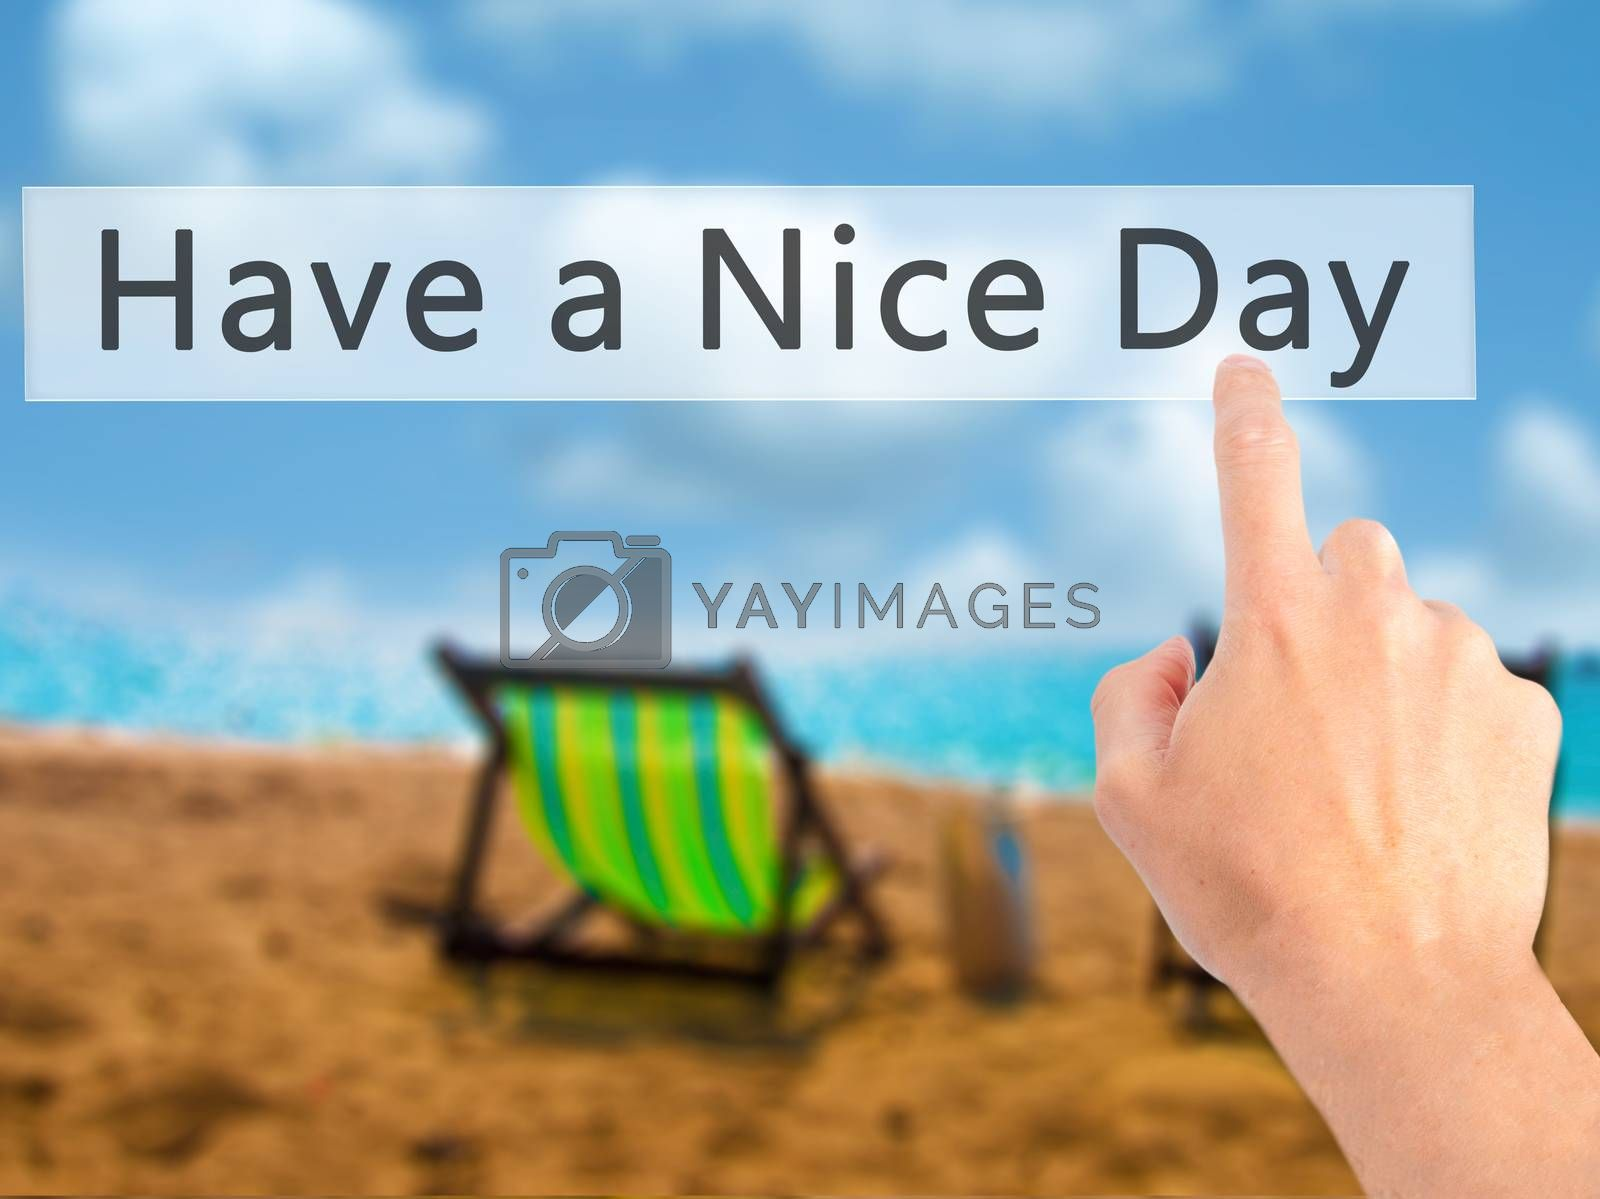 Have a Nice Day - Hand pressing a button on blurred background c by jackald